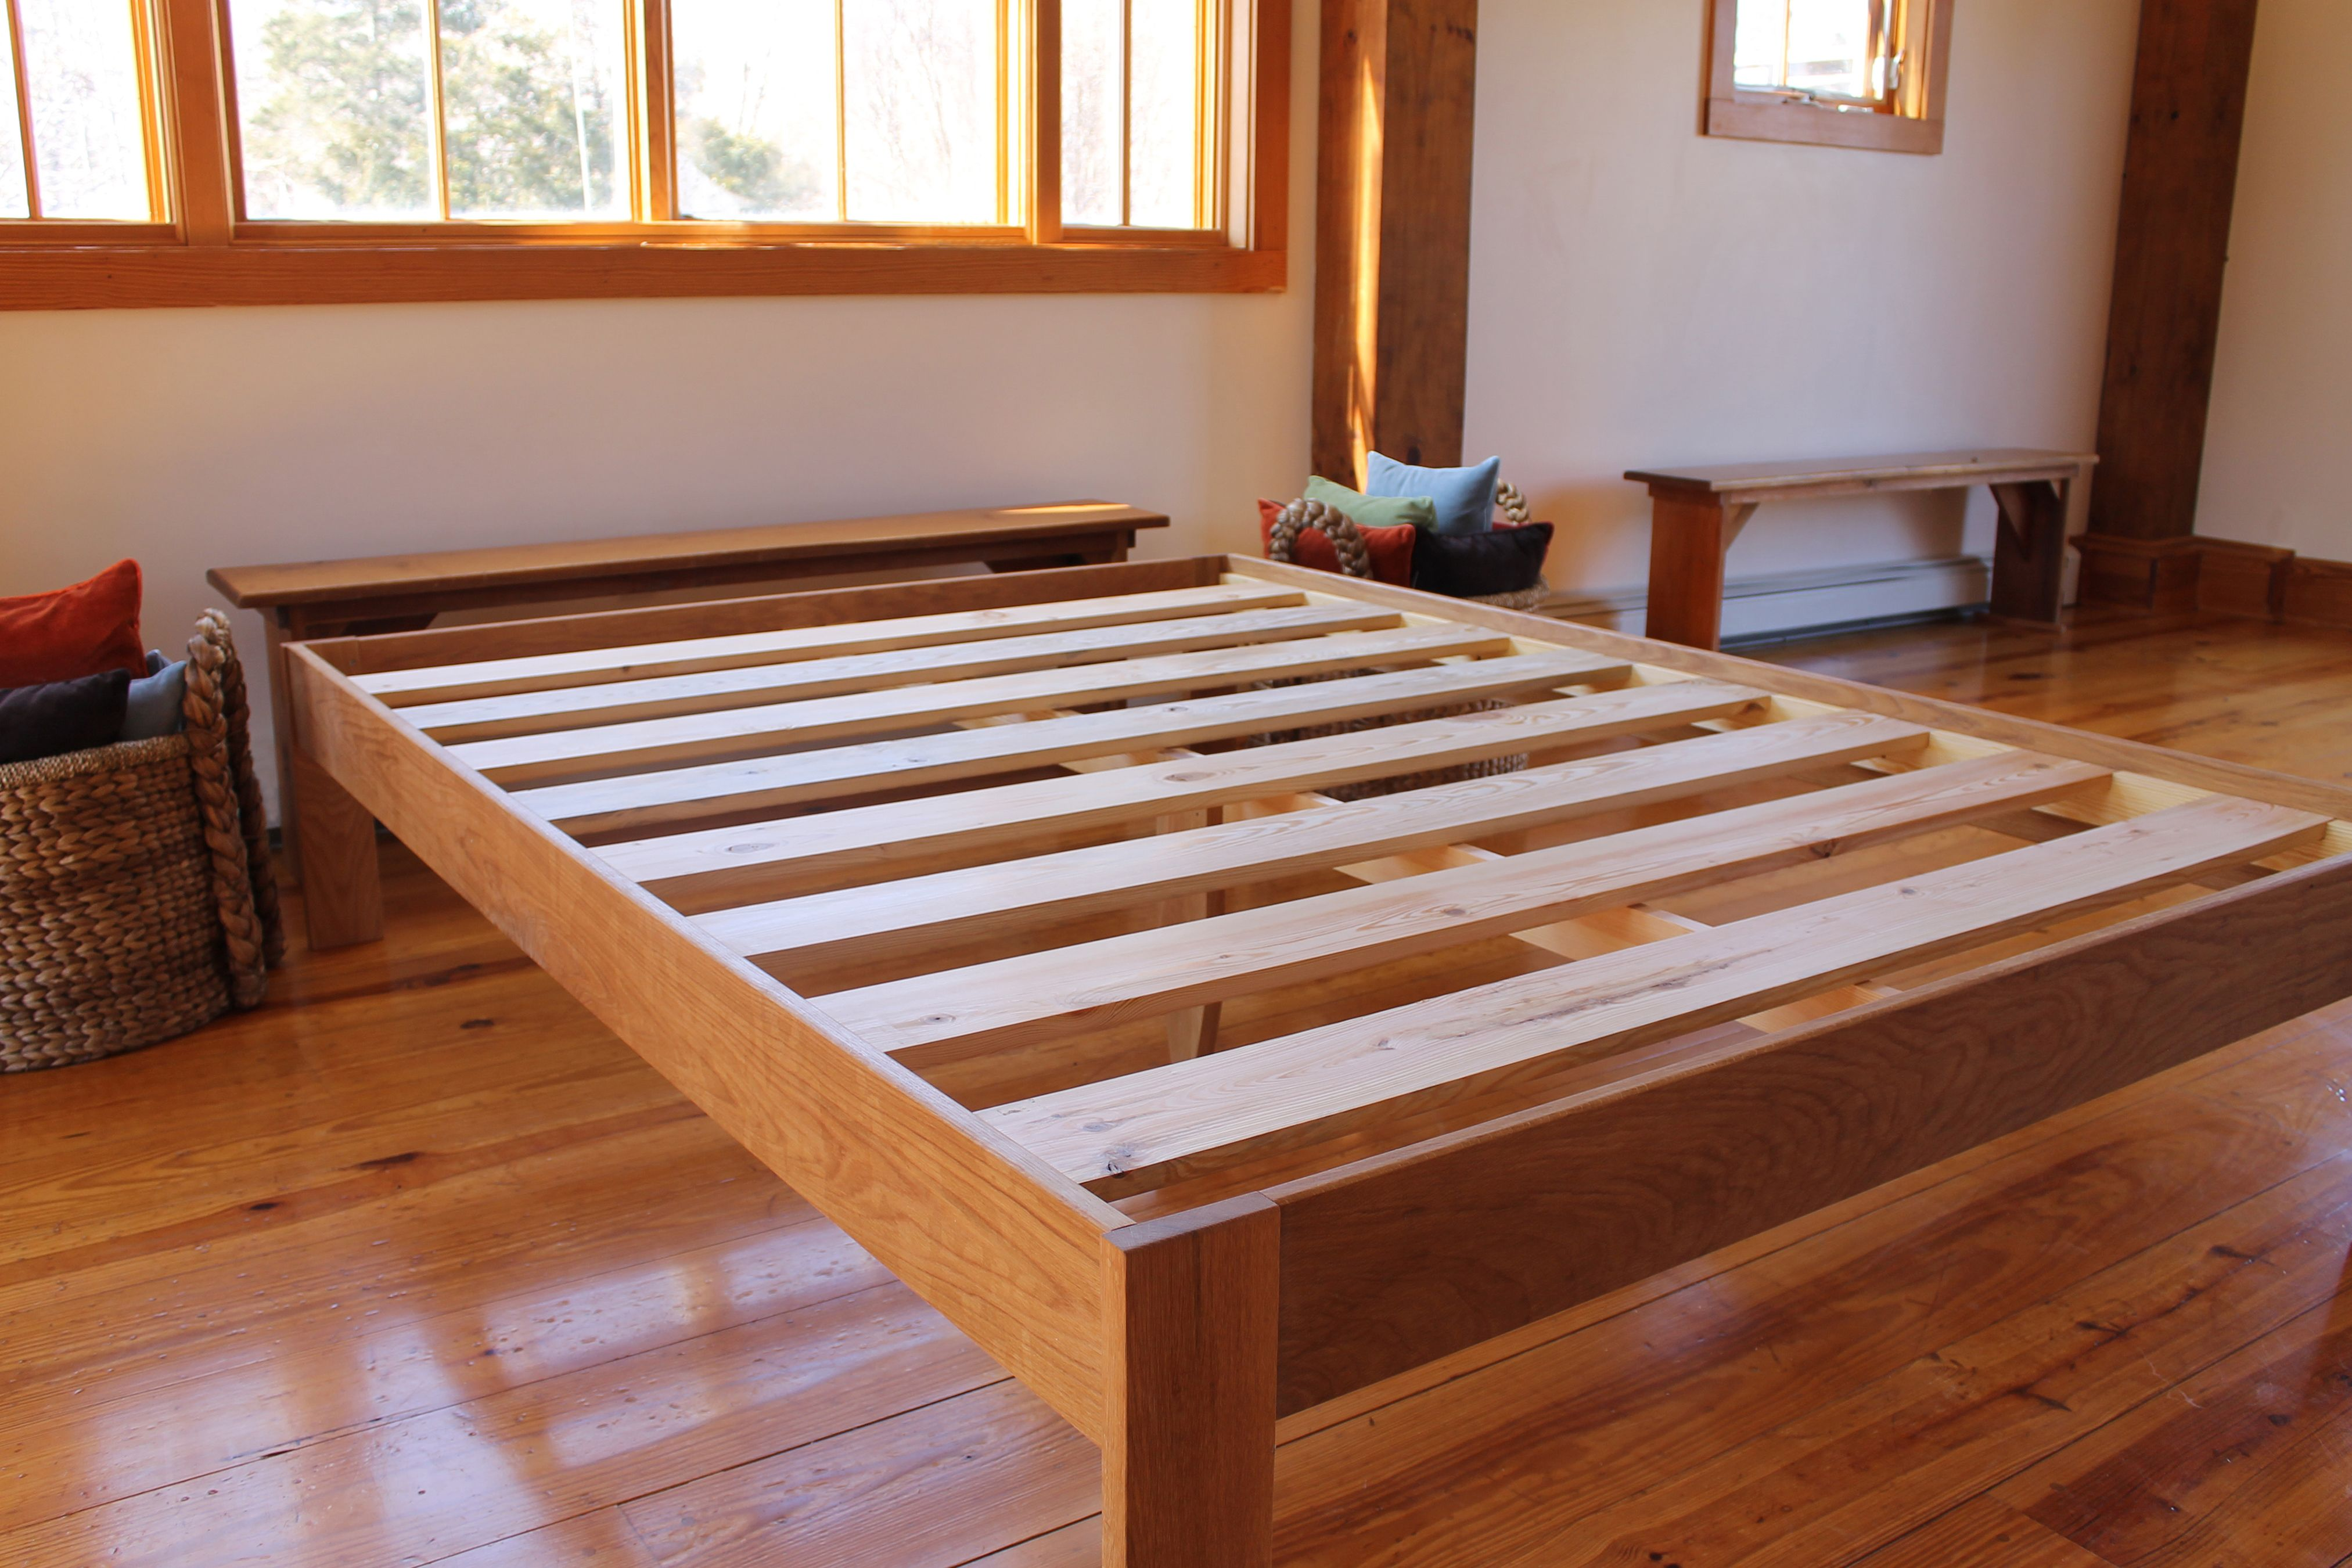 Easy To Assemble, These Frames Have Locking Bed Brackets And